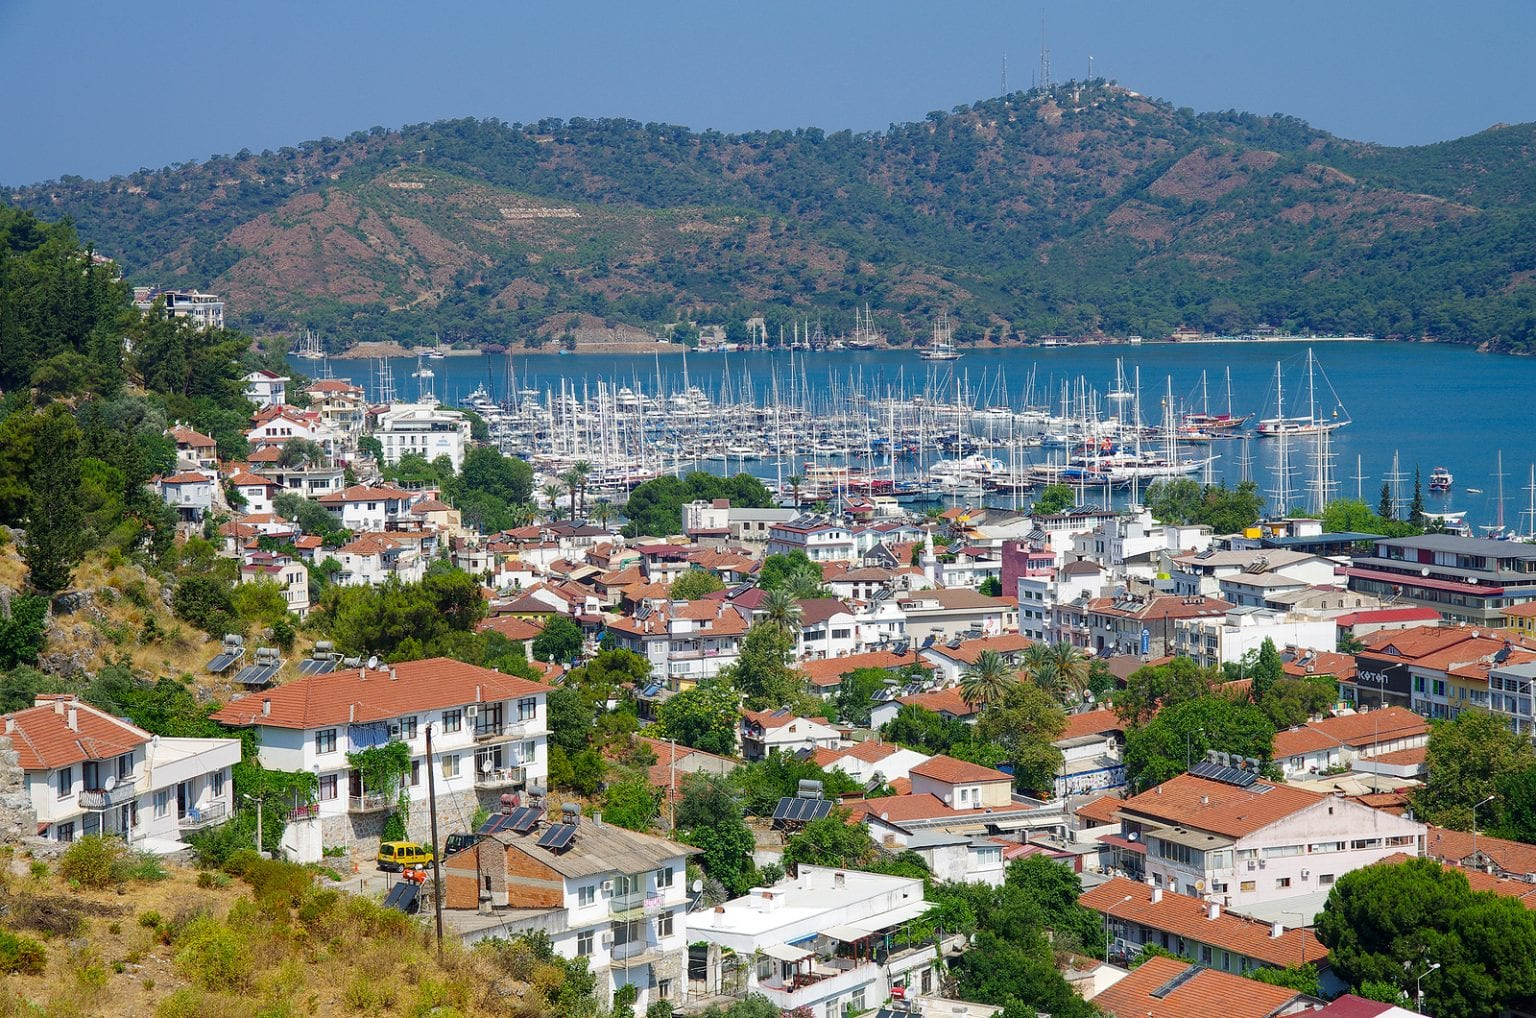 Property for Sale in Fethiye